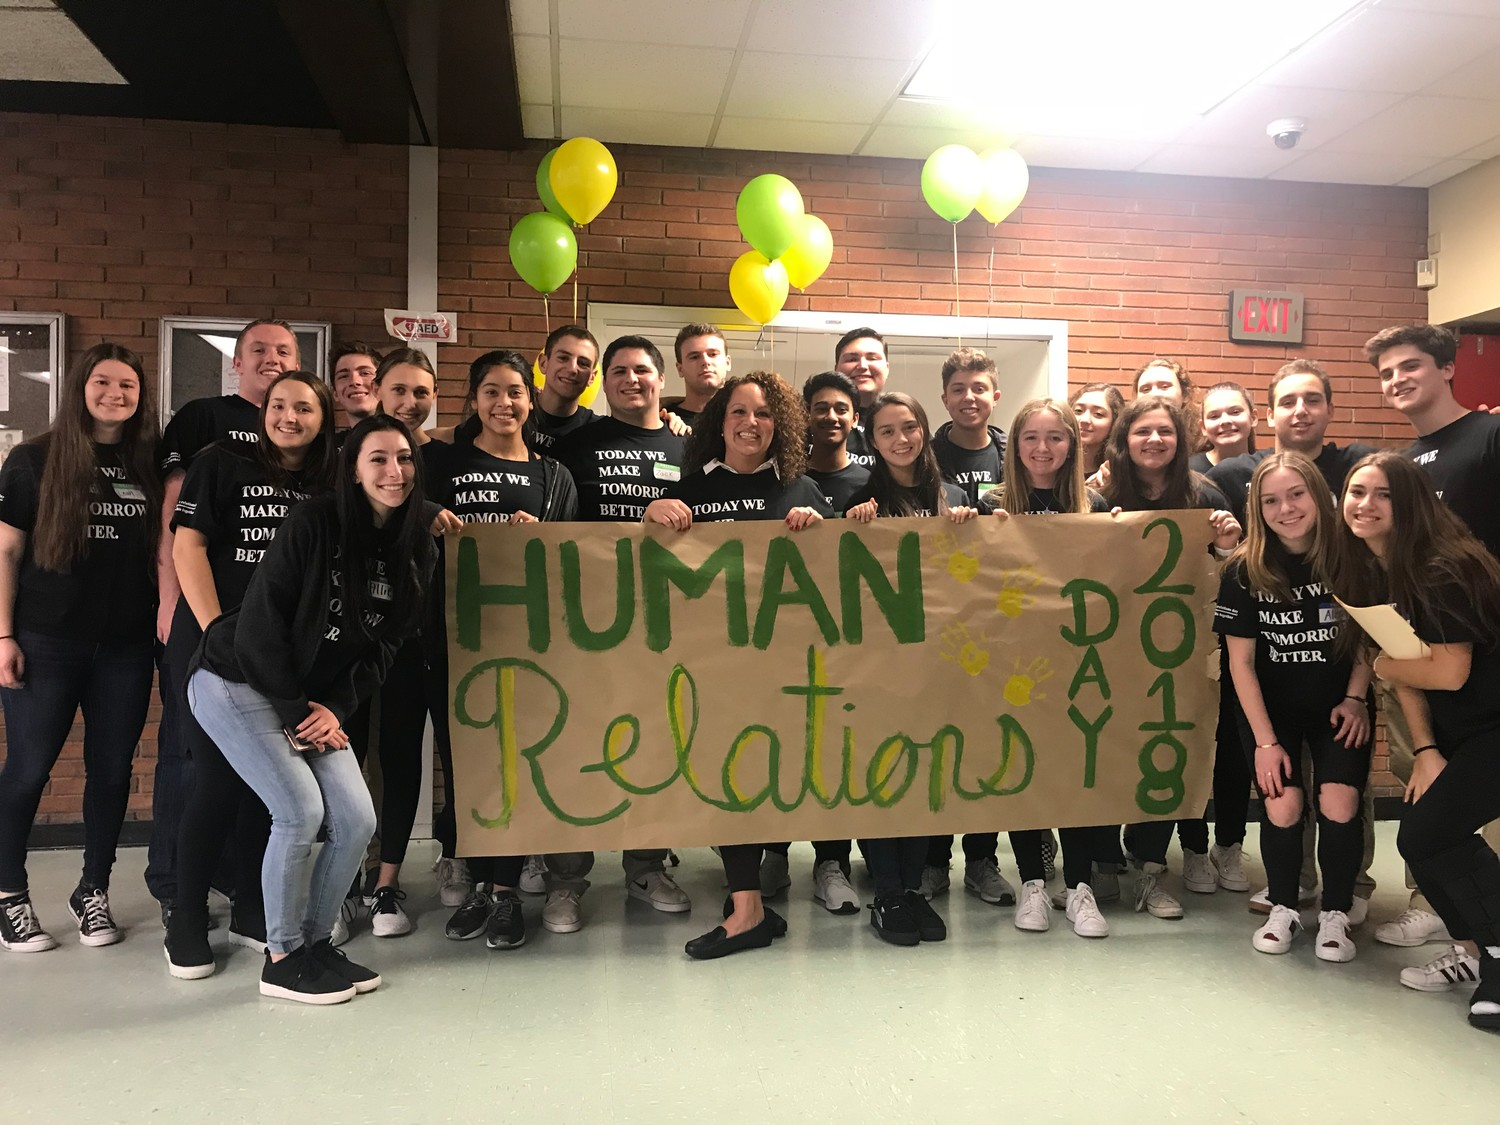 The Lynbrook Student Government Association organized the annual Human Relations Day event on Feb. 15.